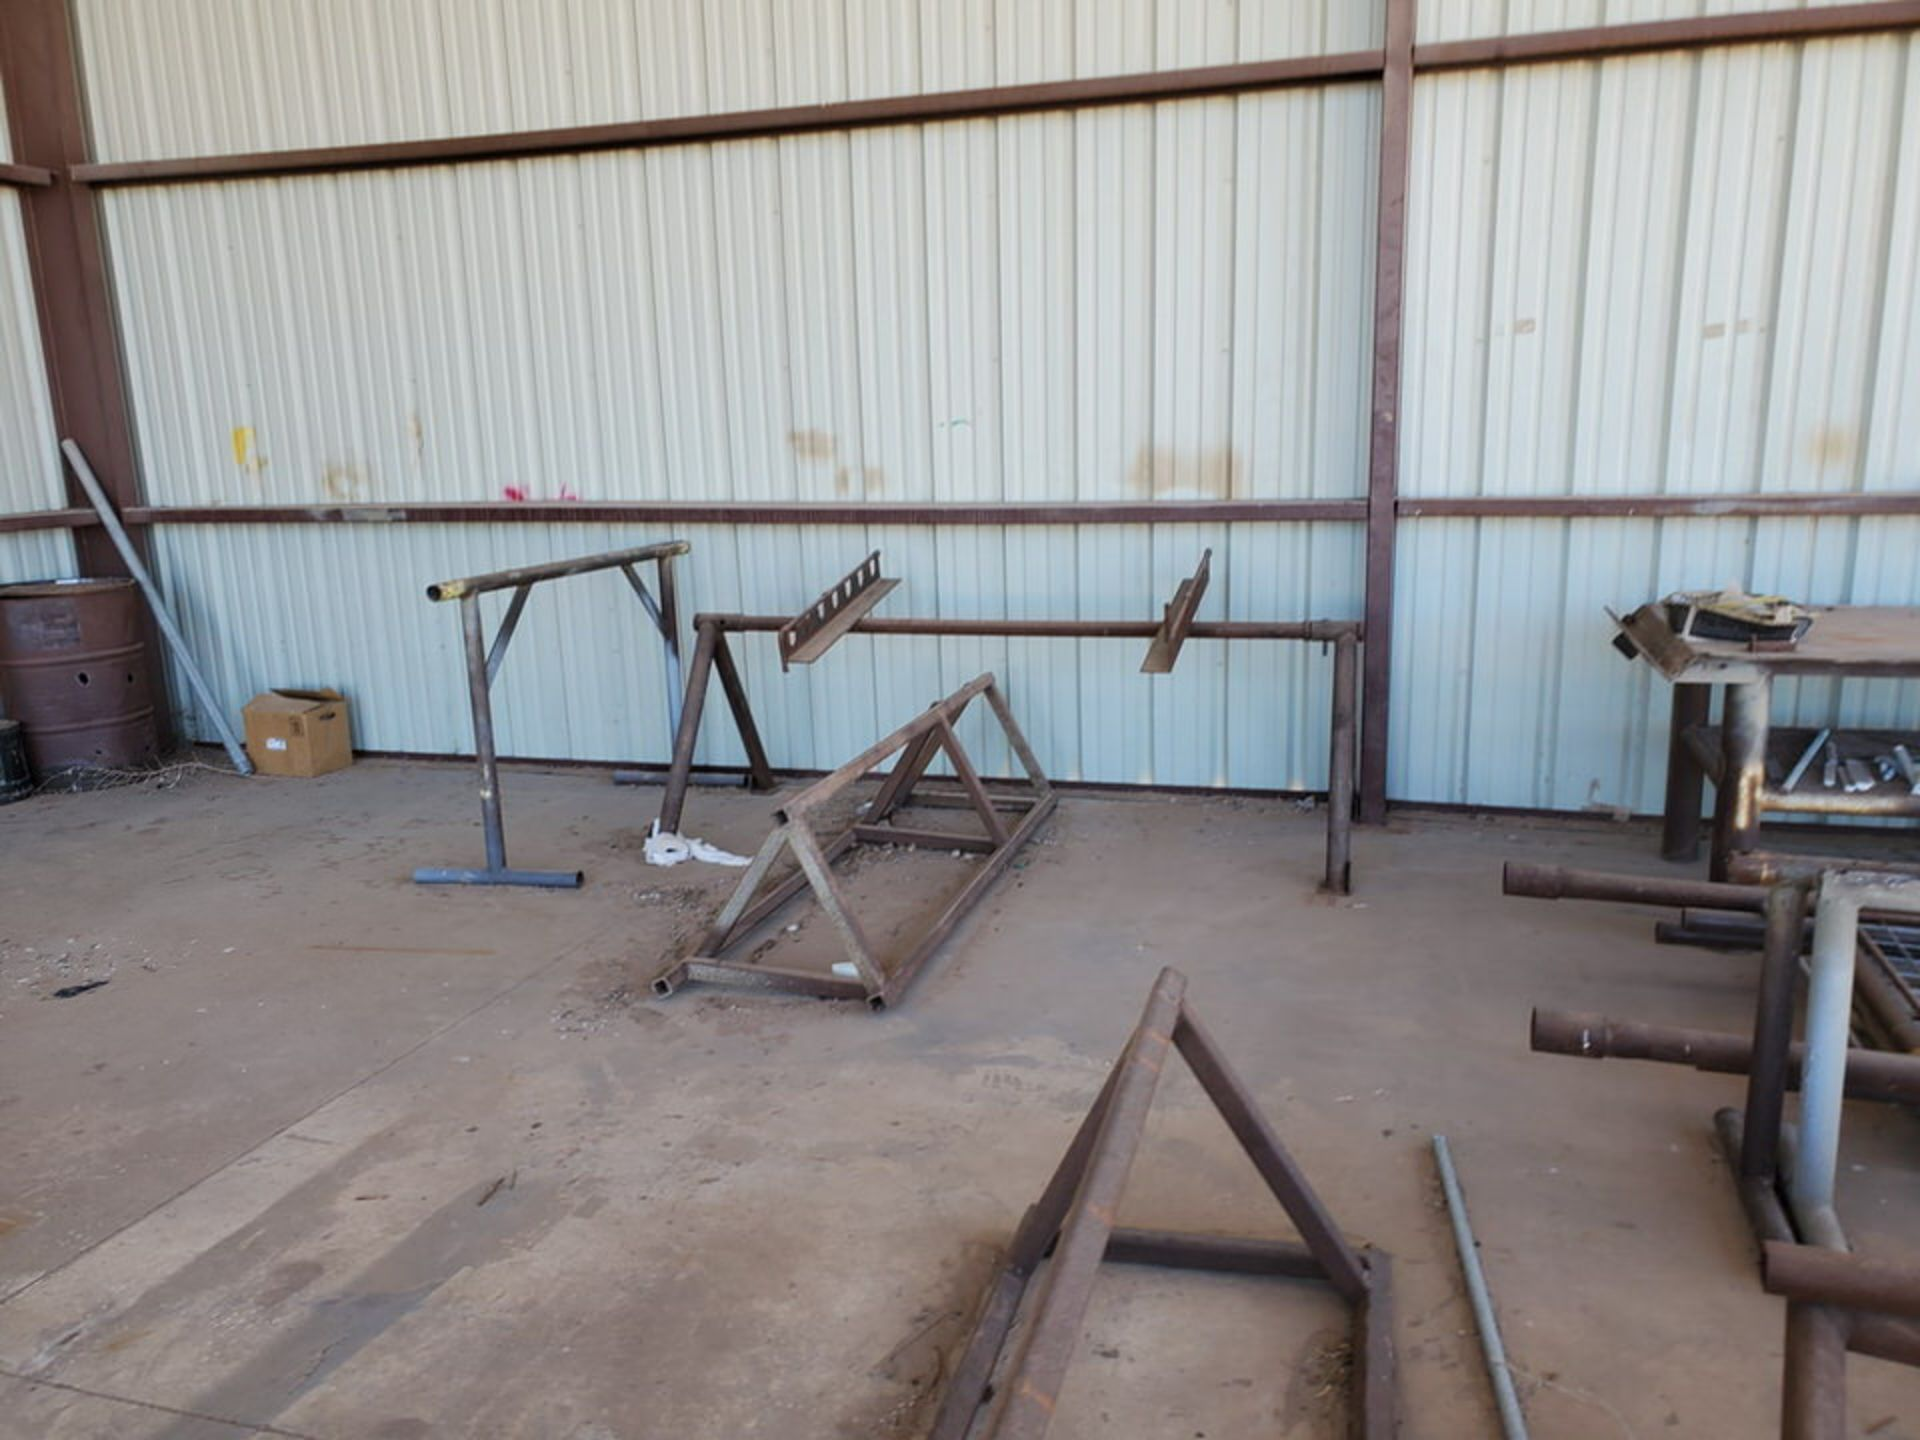 "Misc. Matl. To Include But Not Limited To: 42"" Drum Fan, Saw Horses, Welding Table, etc. - Image 8 of 10"